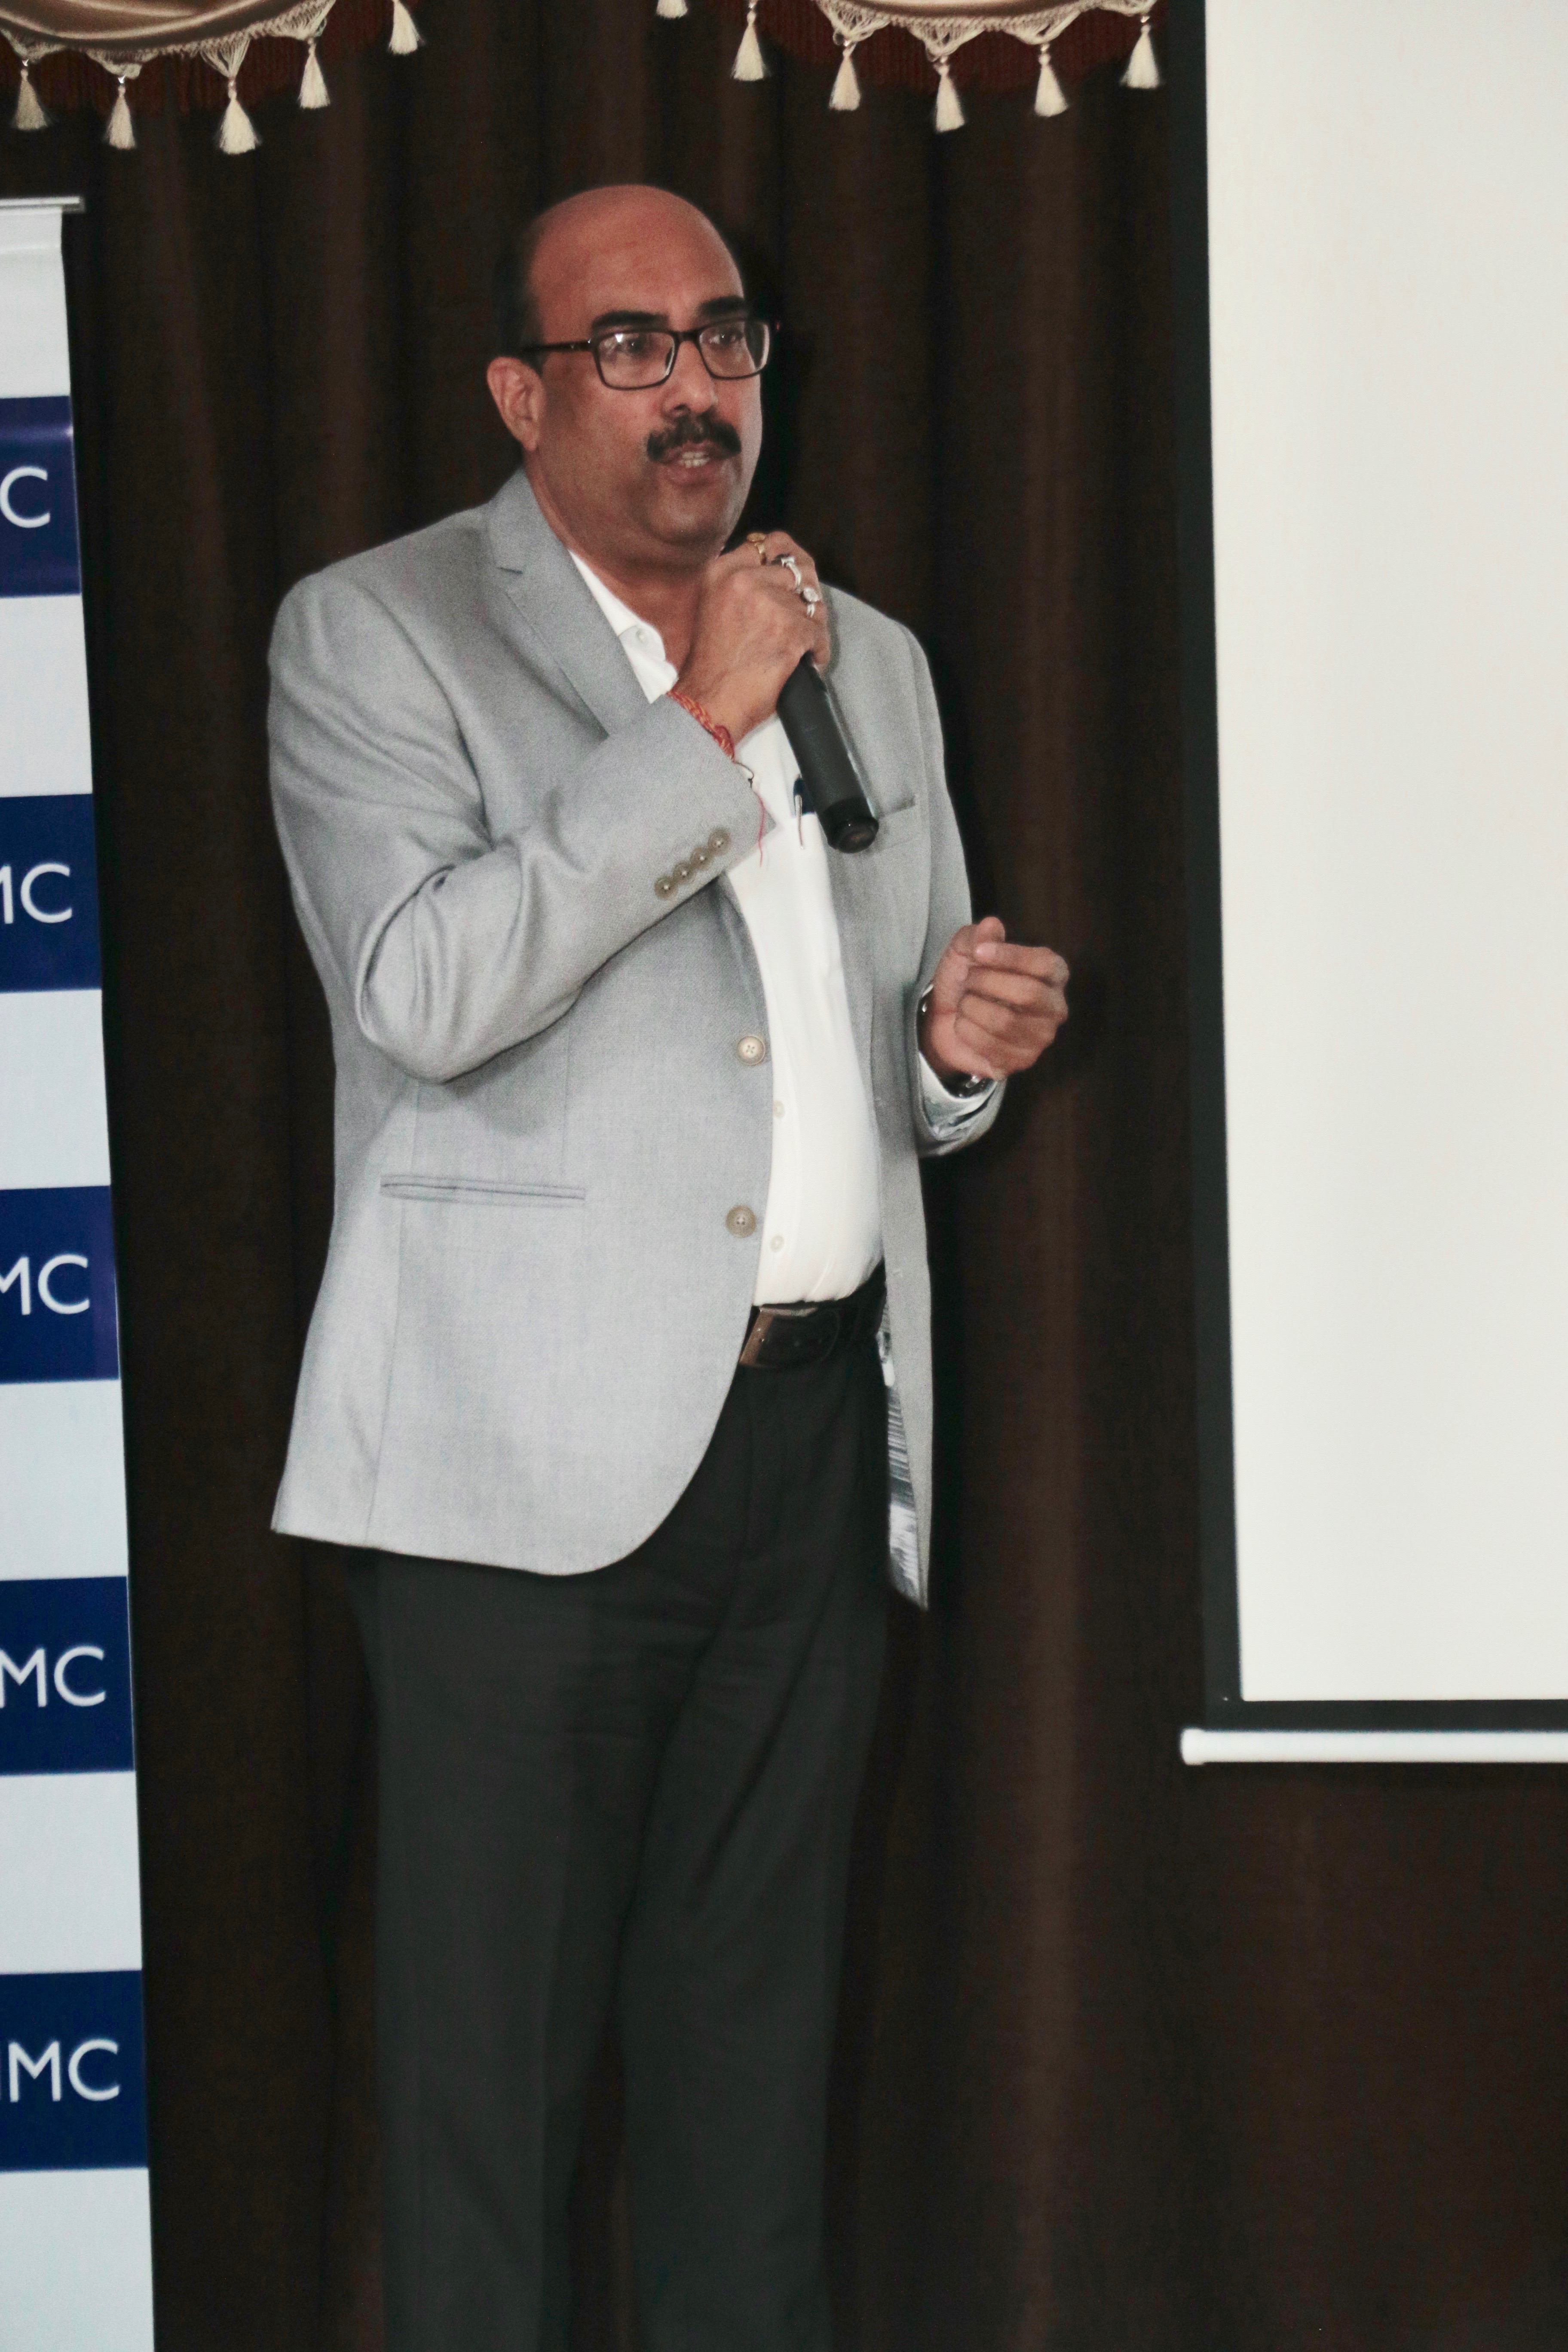 Mr Sanjay Shrivastava CEO Munzer Bharat Pvt Ltd